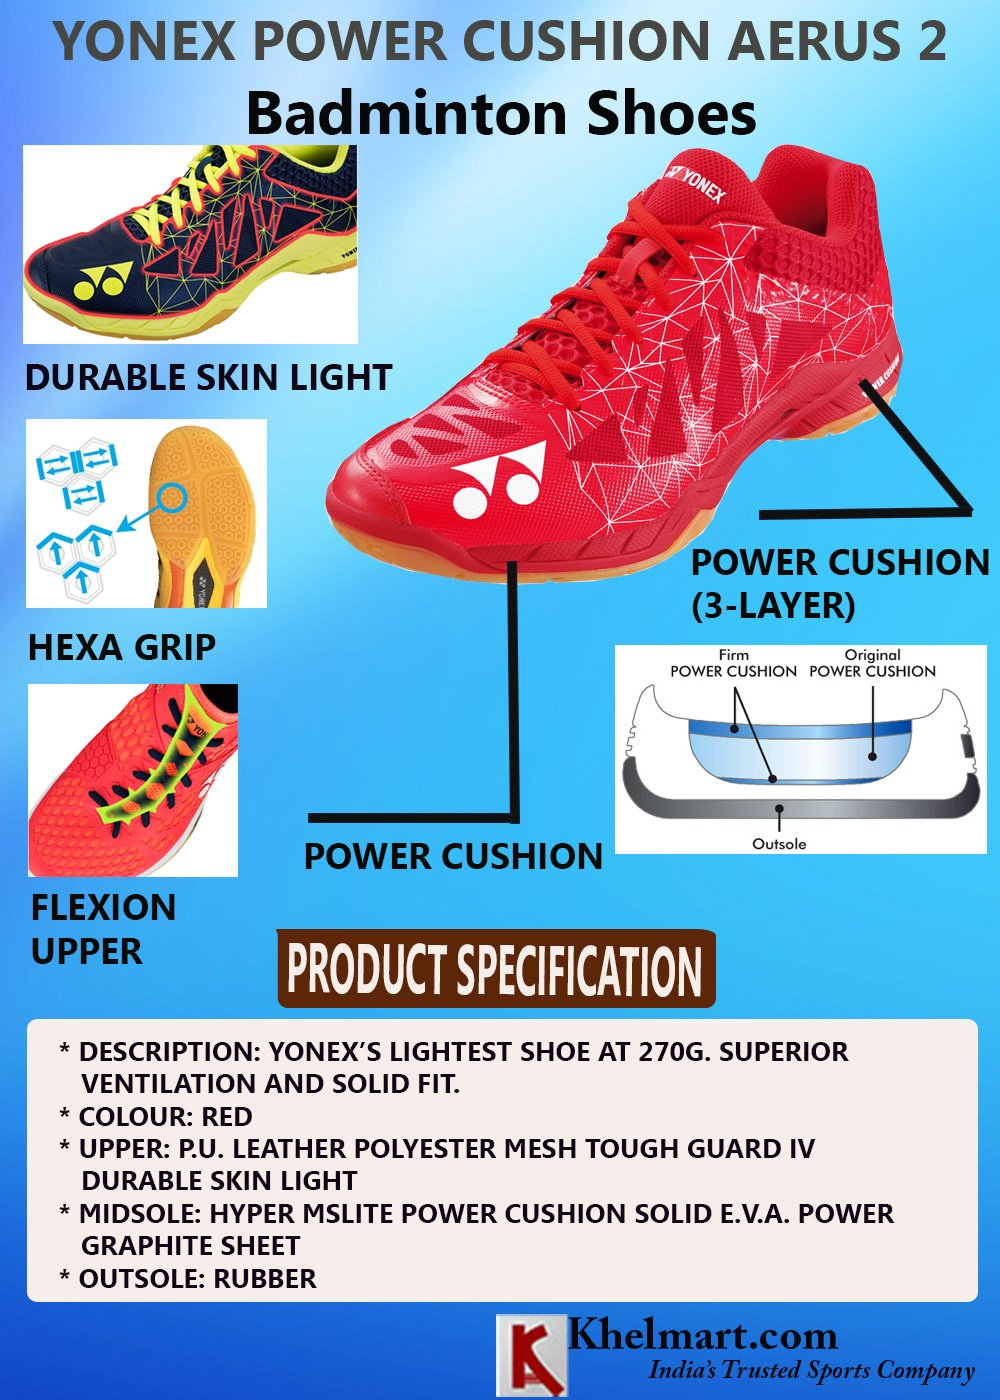 YONEX POWER CUSHION AERUS 2_4.jpg